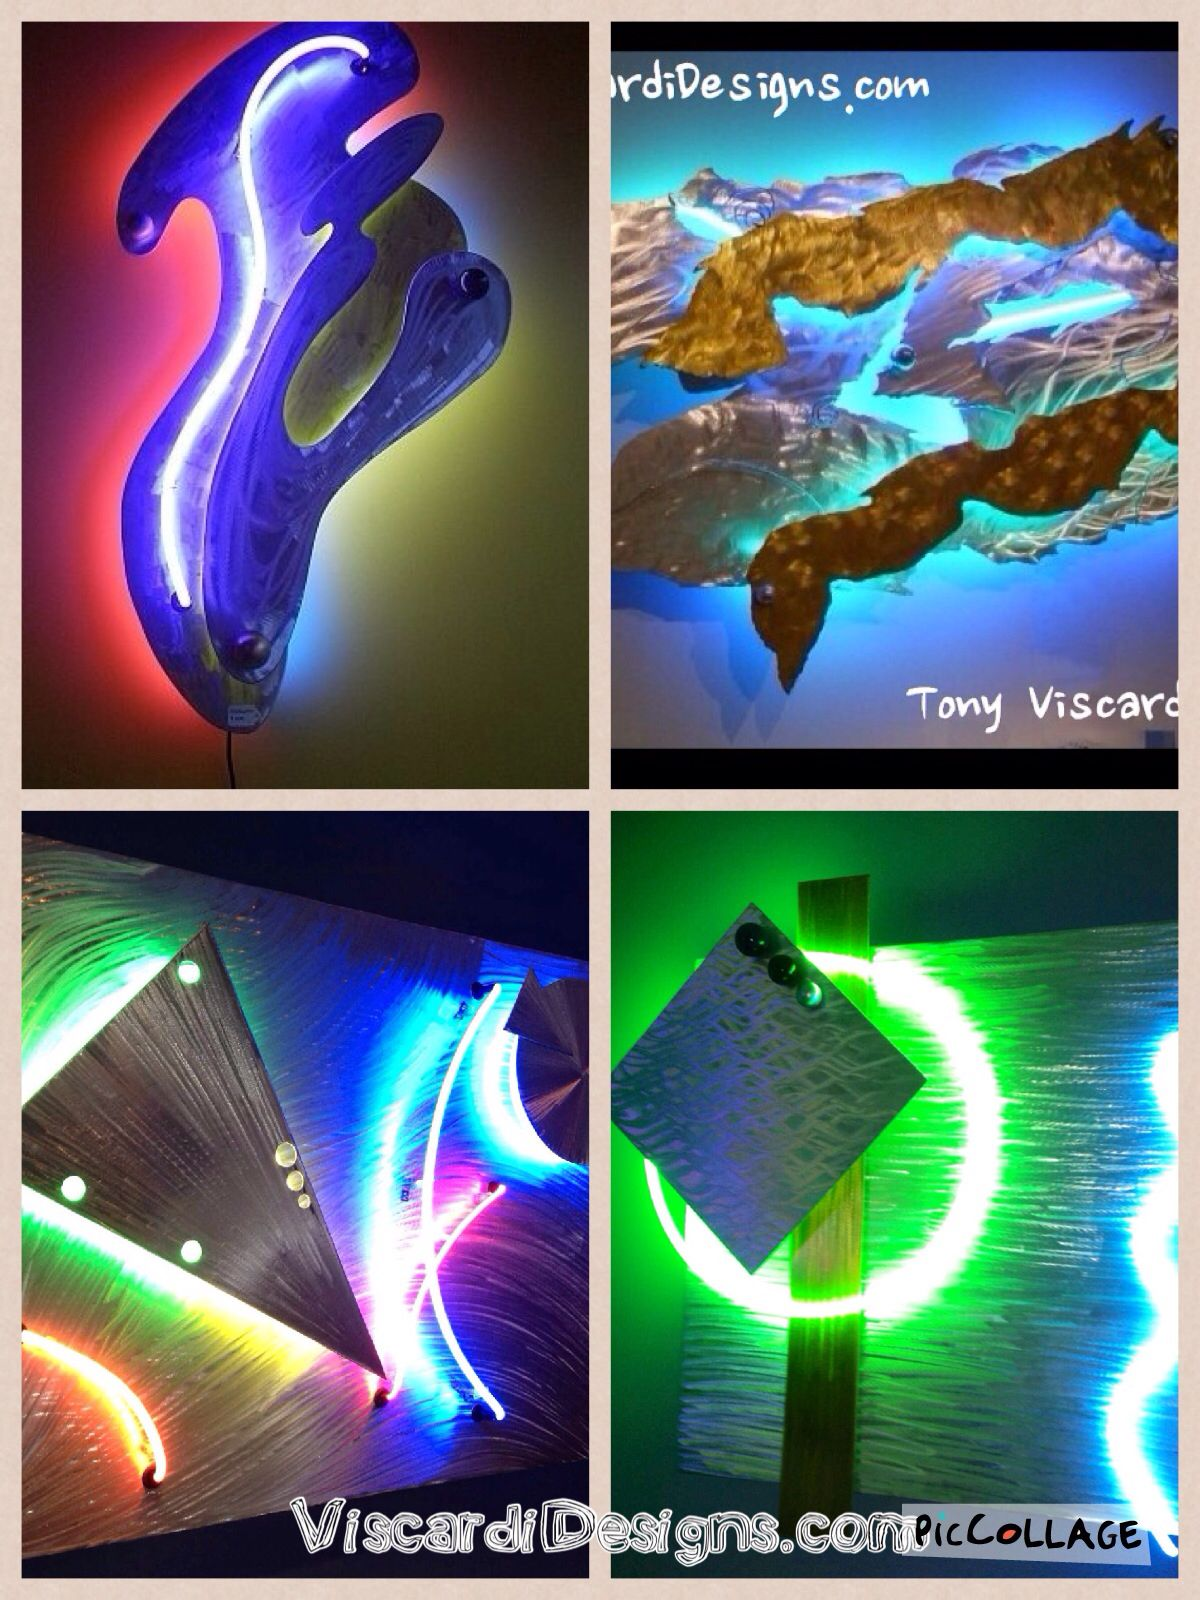 Contemporary art by artist Tony Viscardi See more at Www.ViscardiDesigns.com